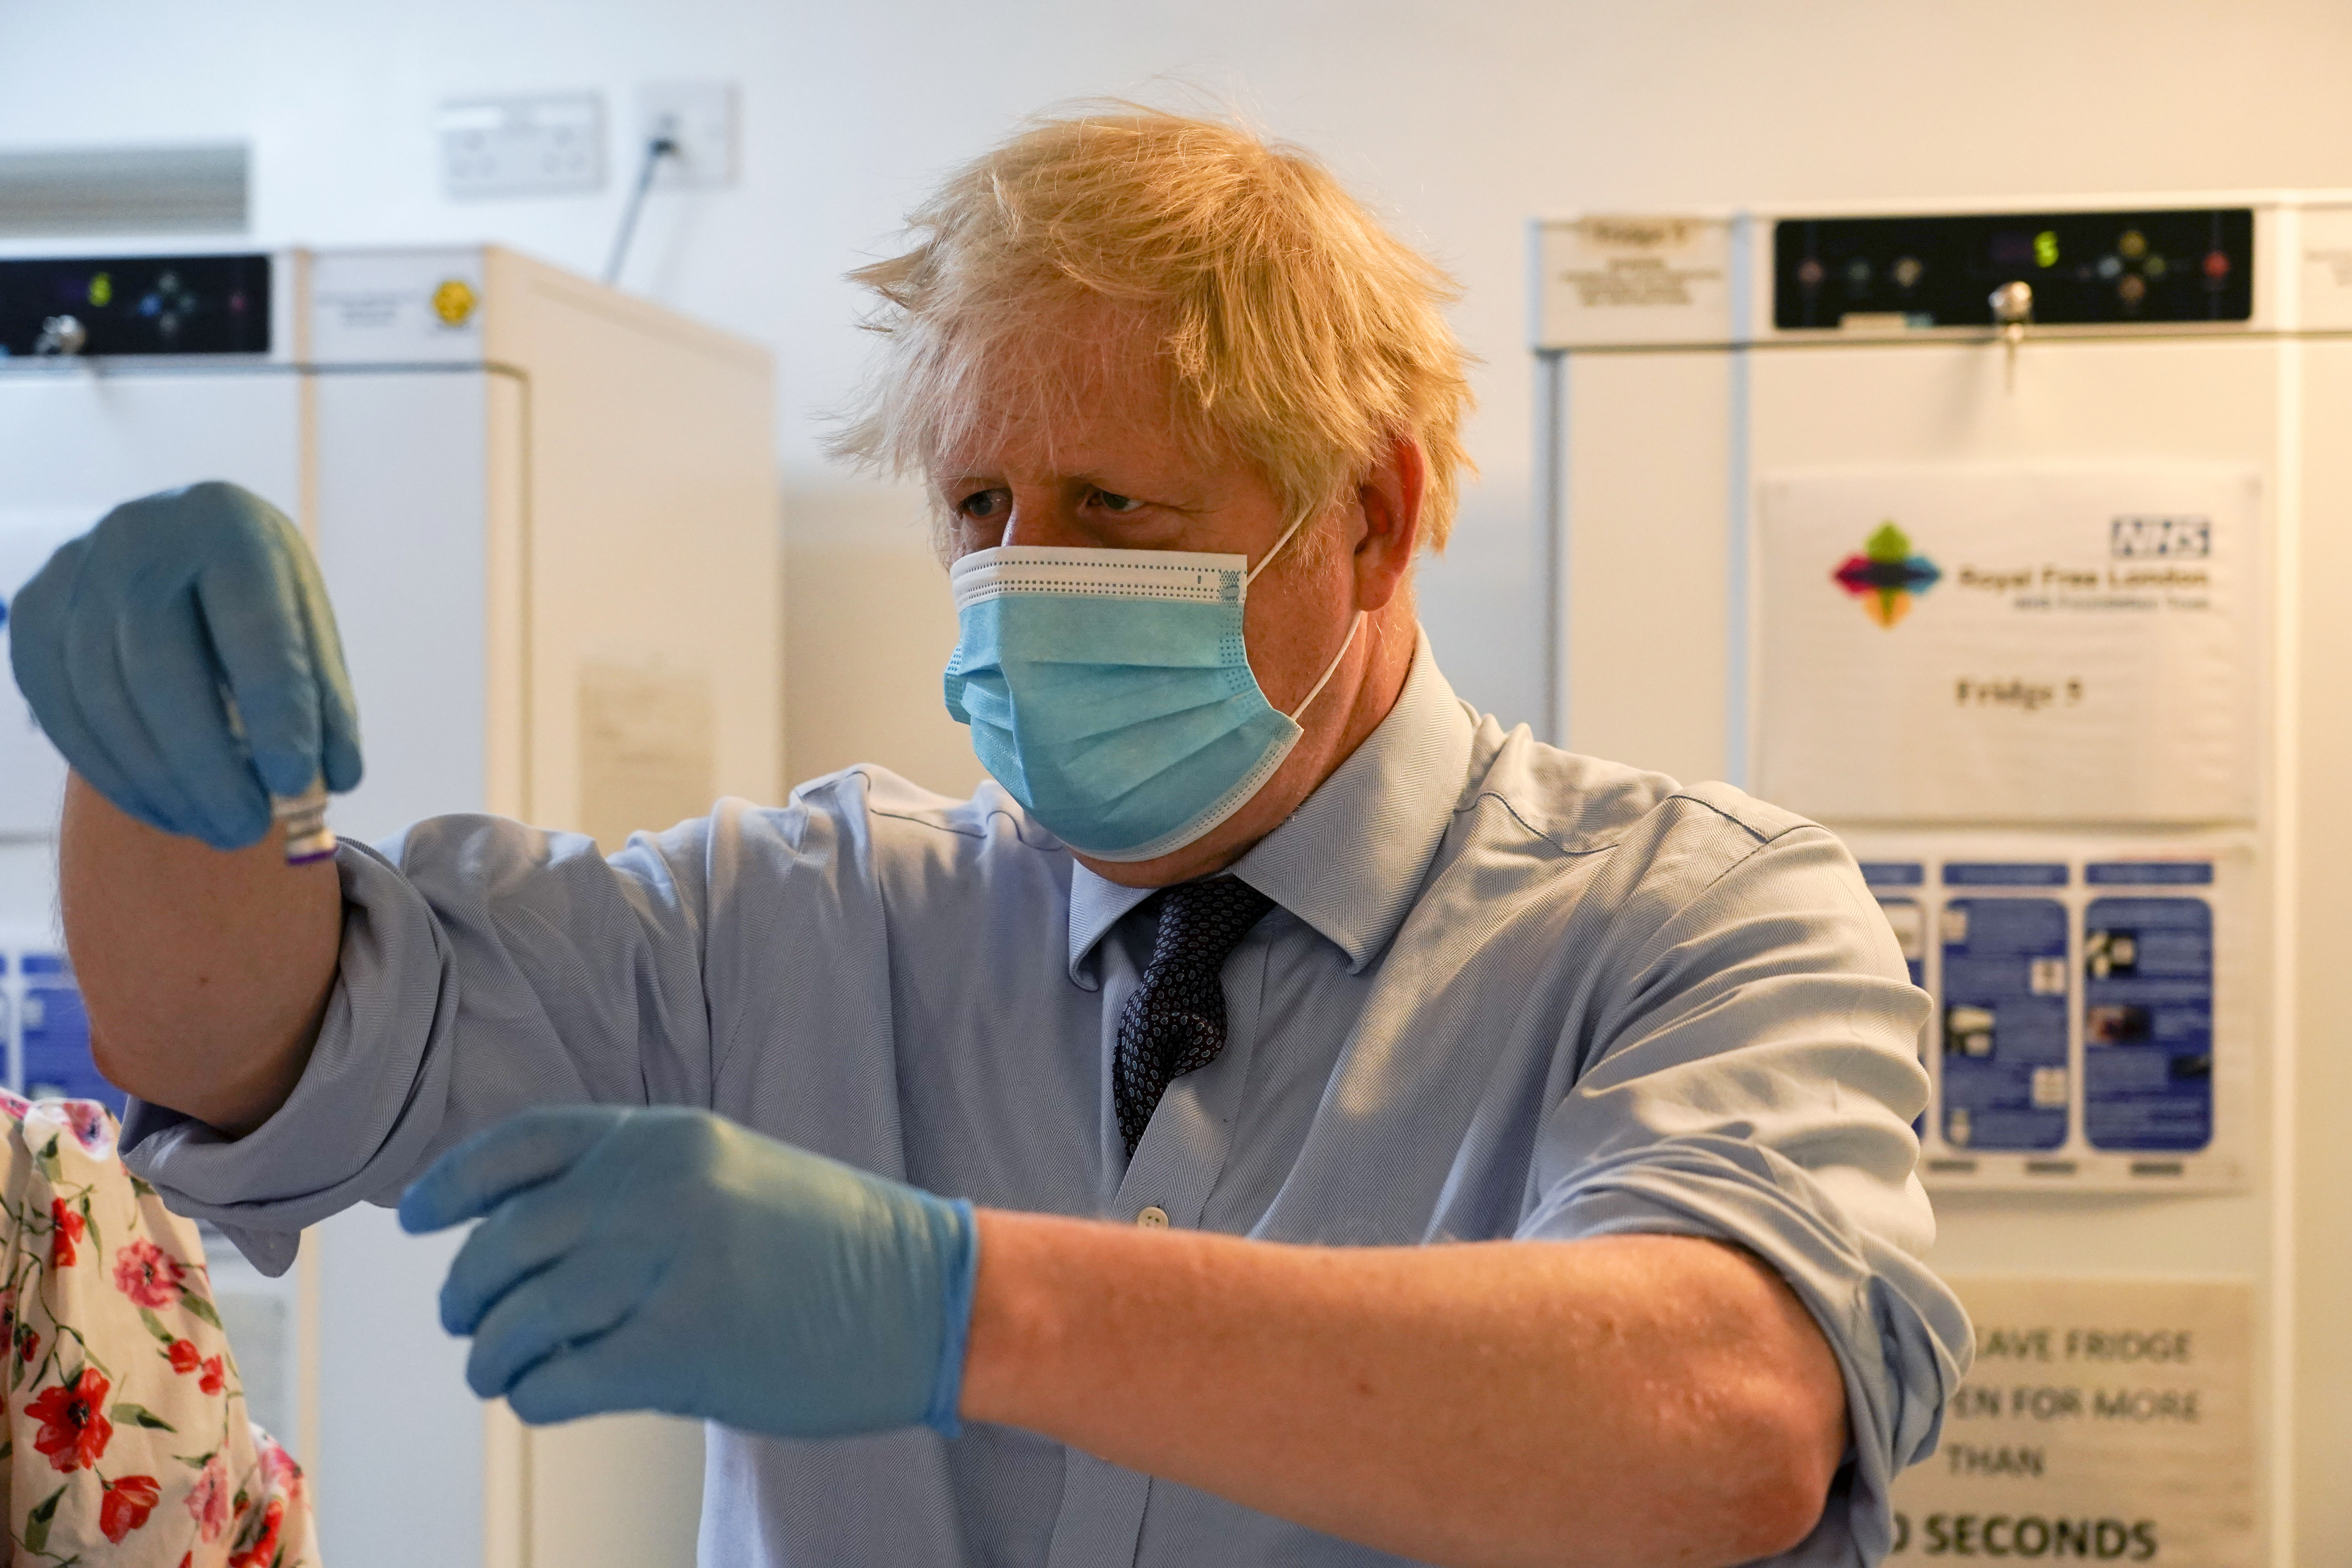 <p>Prime Minister Boris Johnson during a visit to a COVID 19 vaccination centre at the StoneX Stadium, home of rugby union club Saracens, in north London. Picture date: Monday June 21, 2021. See PA story HEALTH Coronavirus. Photo credit should read: Alberto Pezzali/PA Wire</p>